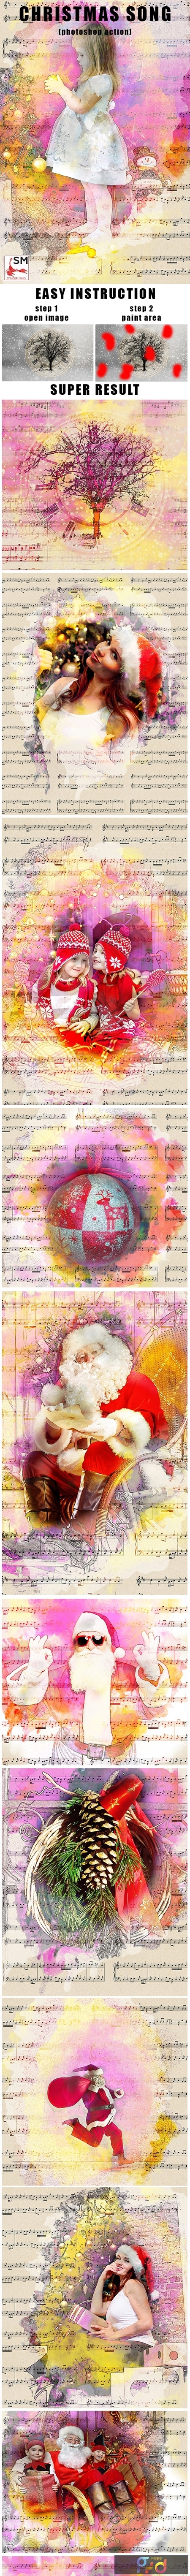 Christmas Song Photoshop Action 21141296 1